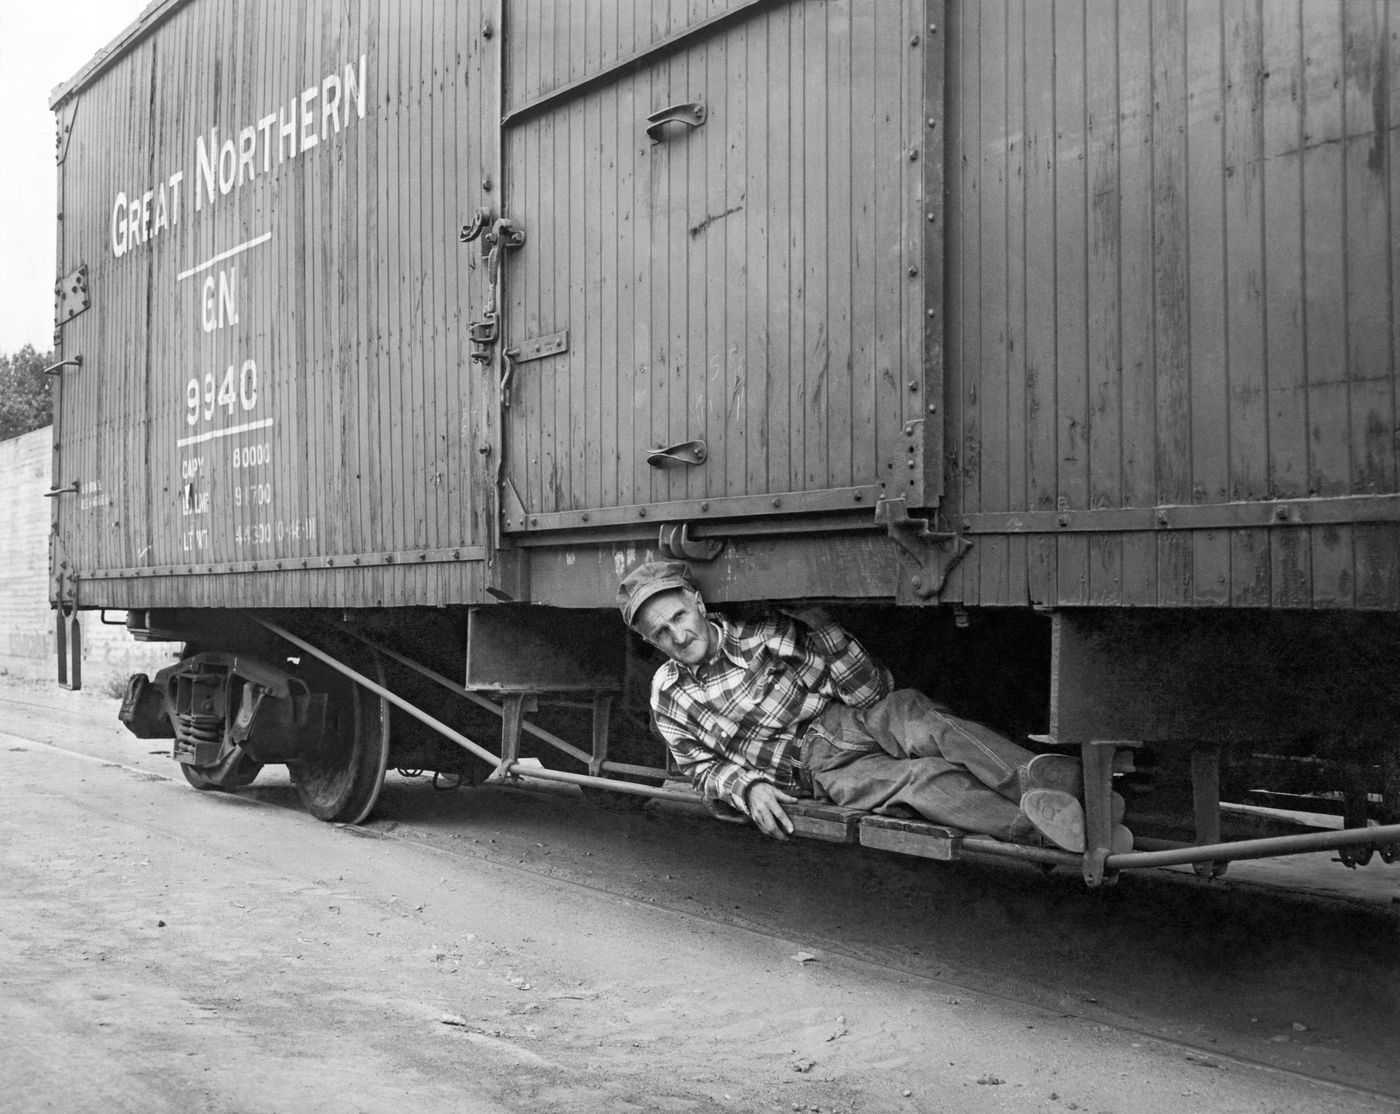 The best strategies for jumping on a train, from 1900s hobos